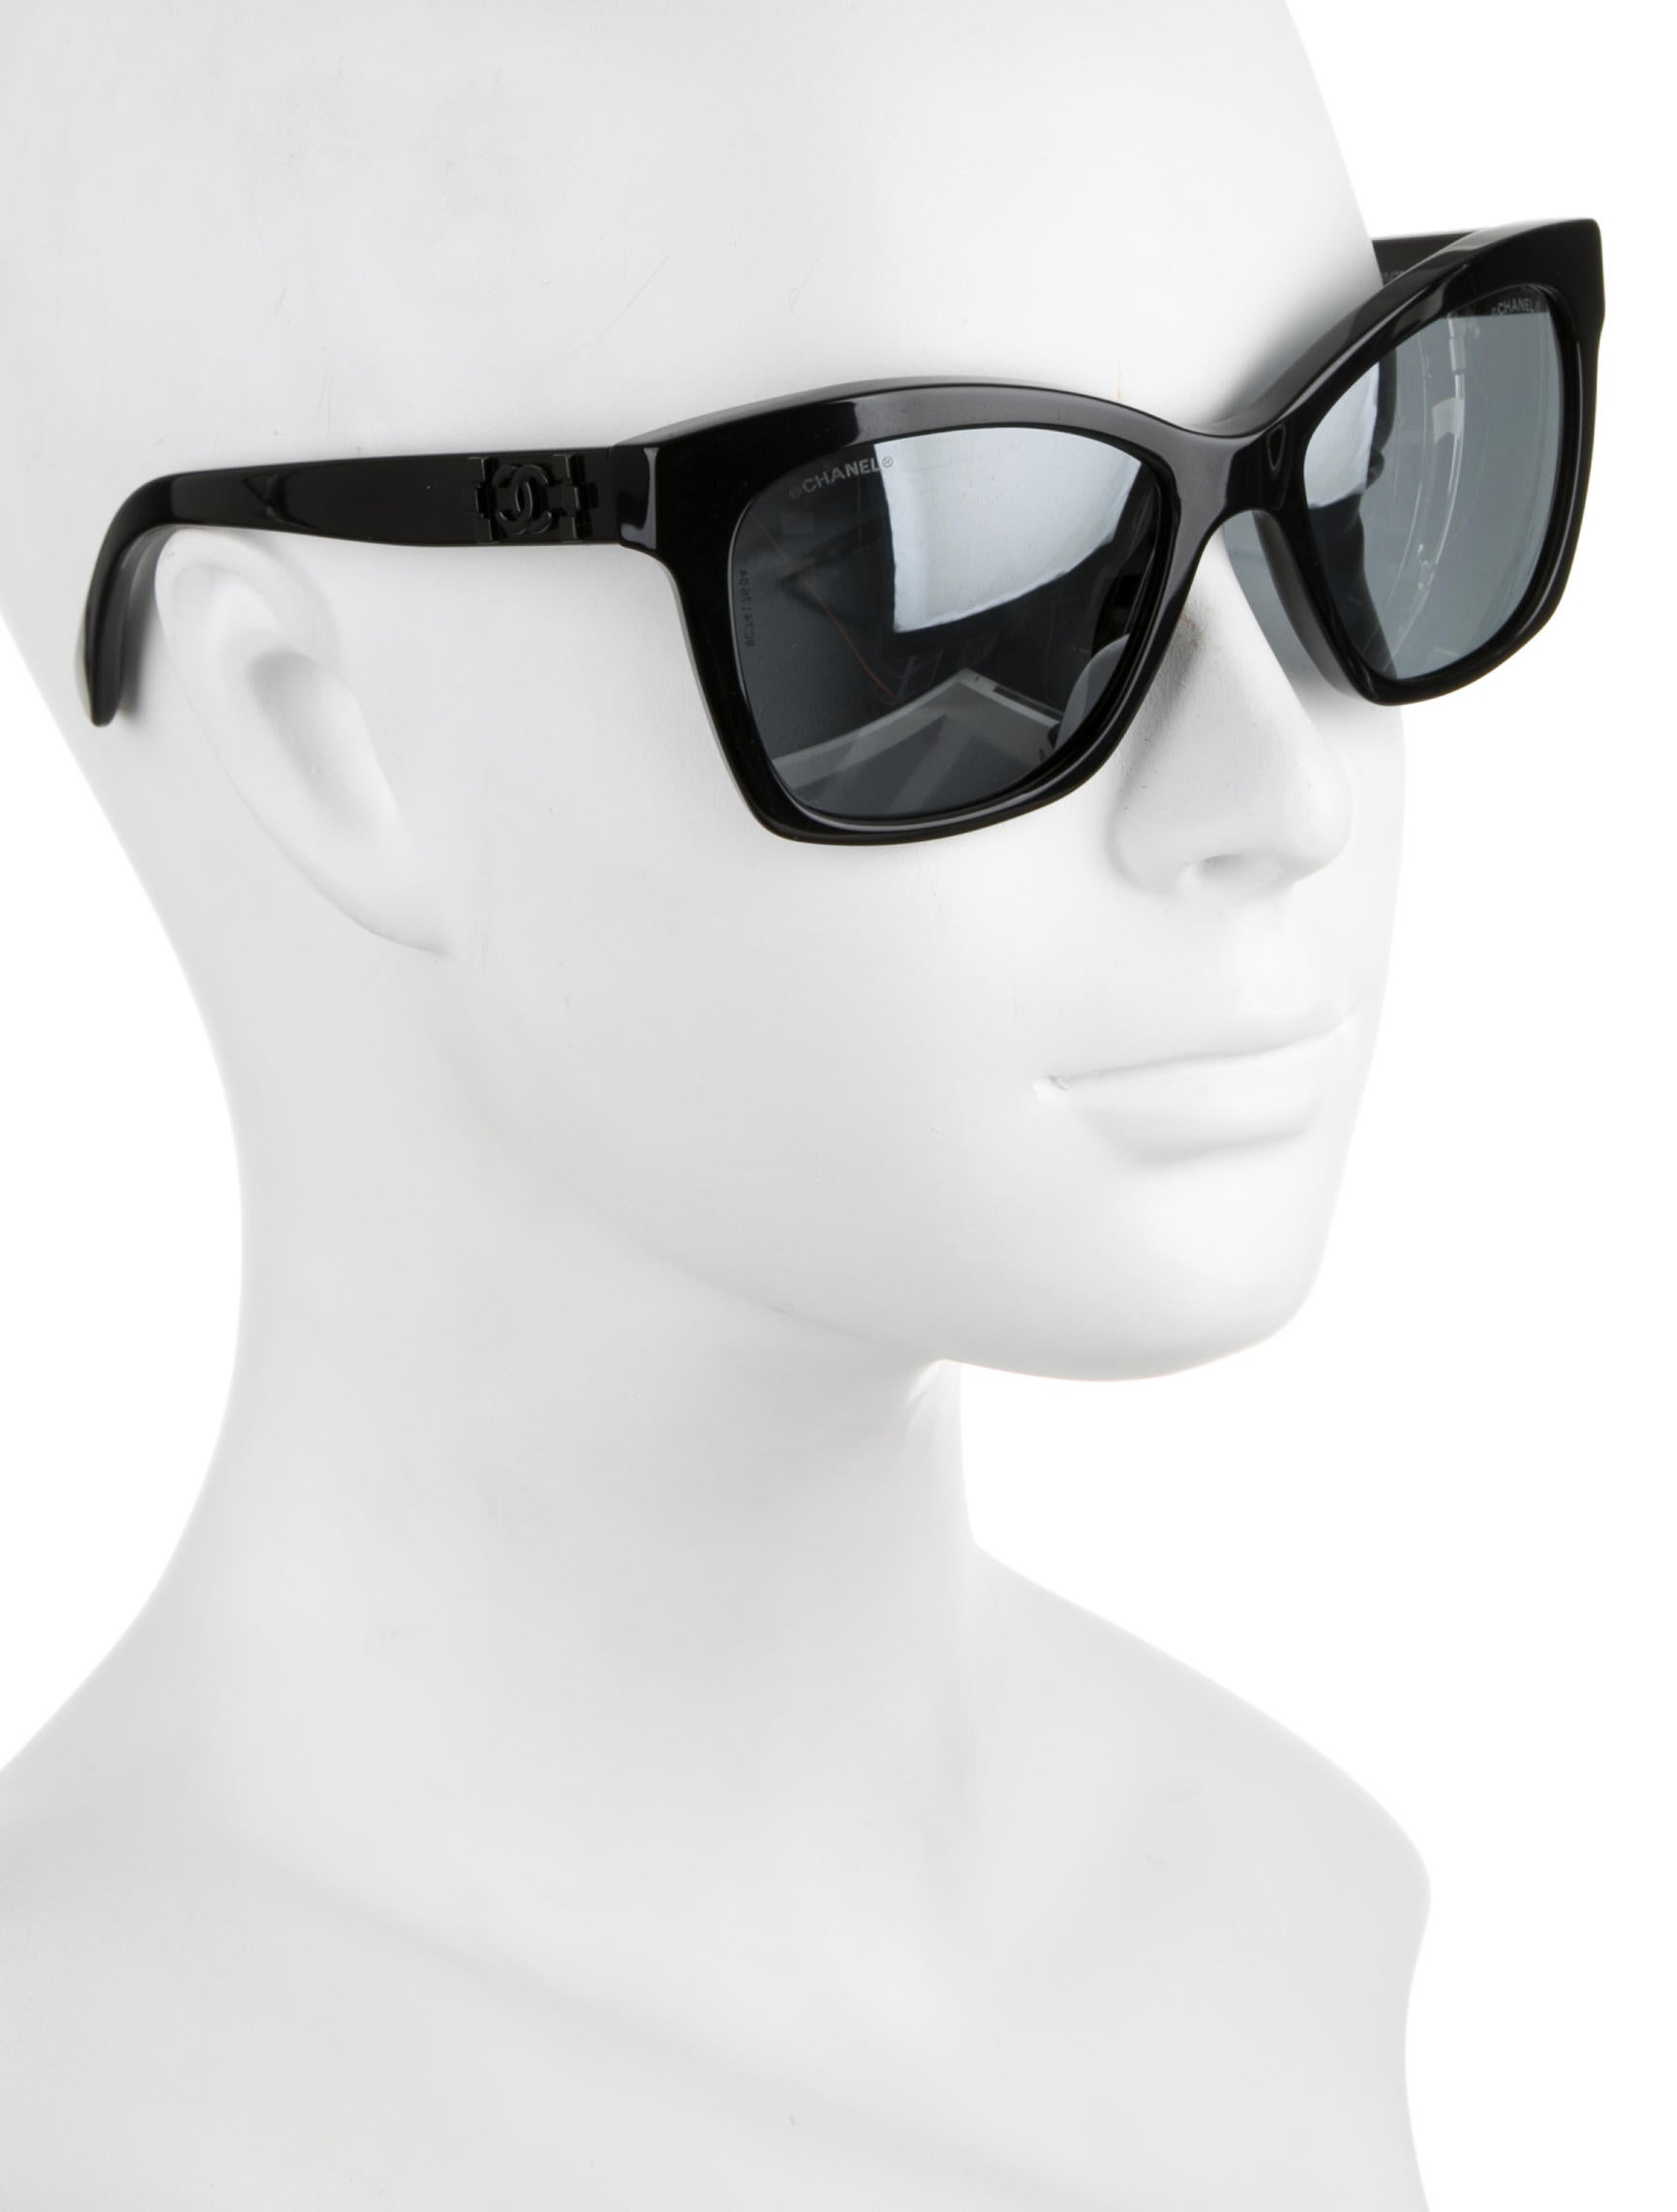 Chanel Erfly Acetate Sunglasses  chanel erfly signature sunglasses w tags accessories